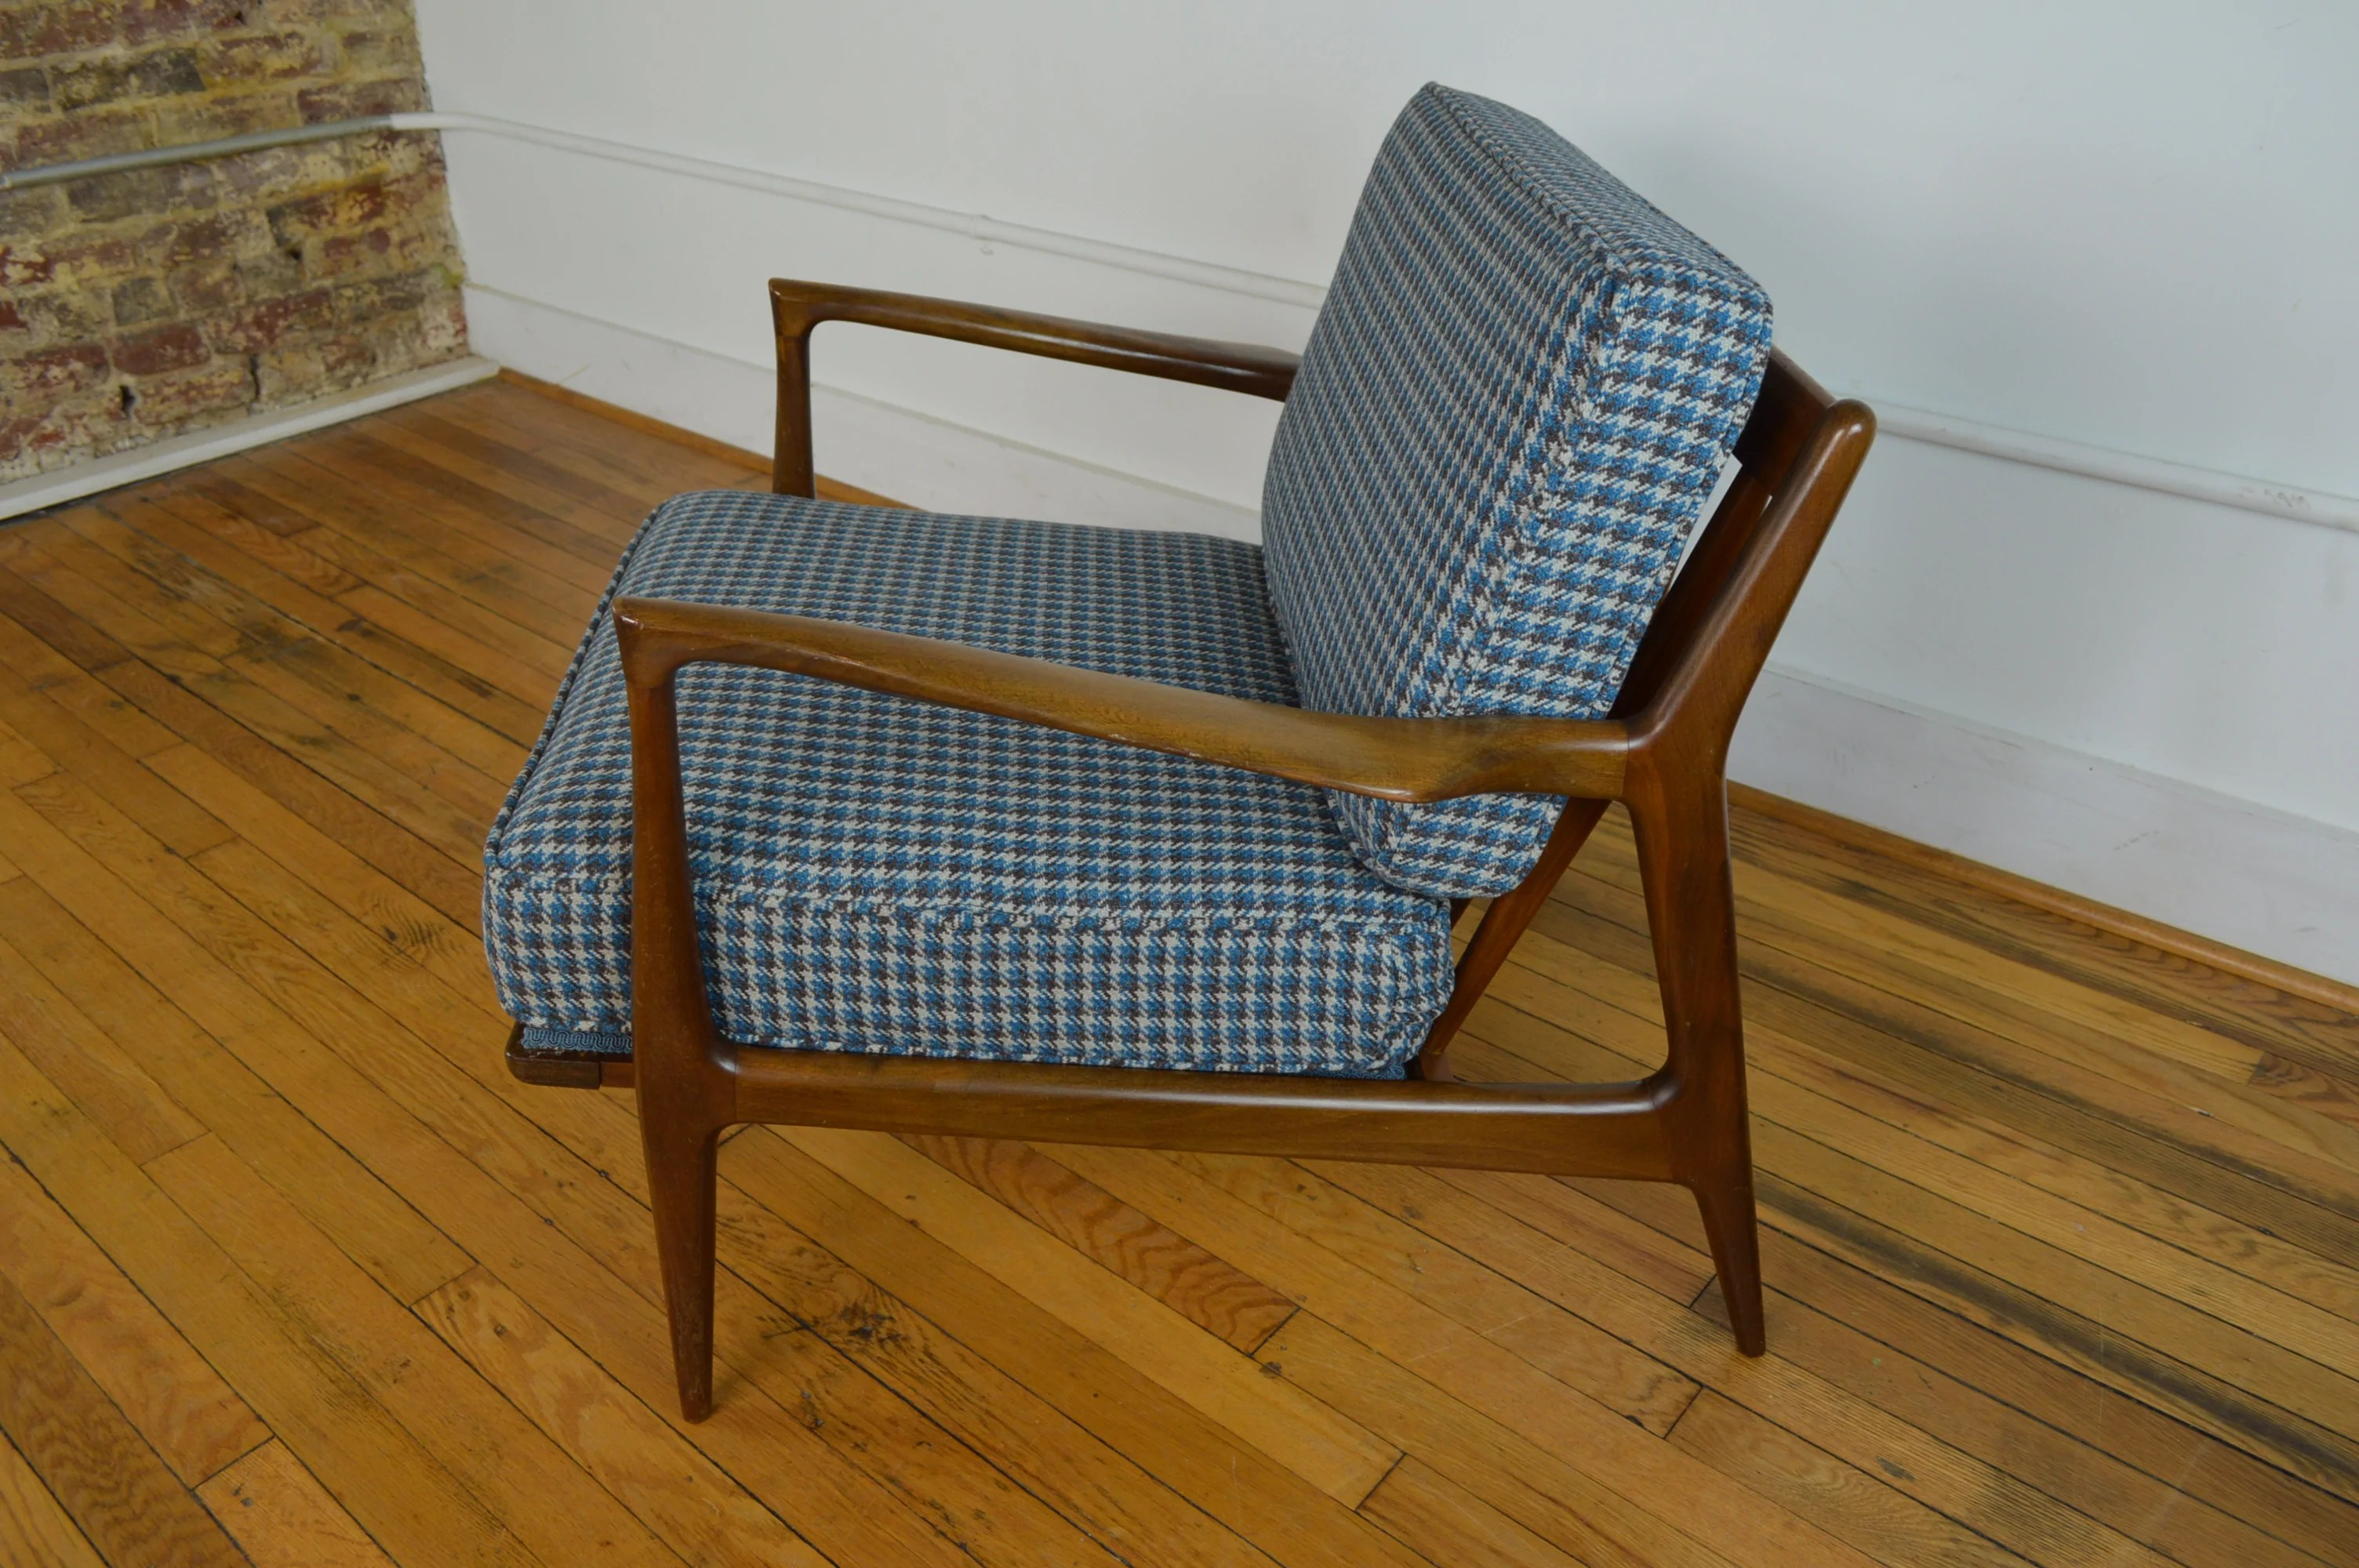 Selig Chair Ib Kofod Larsen For Selig Danish Lounge Chair In Houndstooth Wool